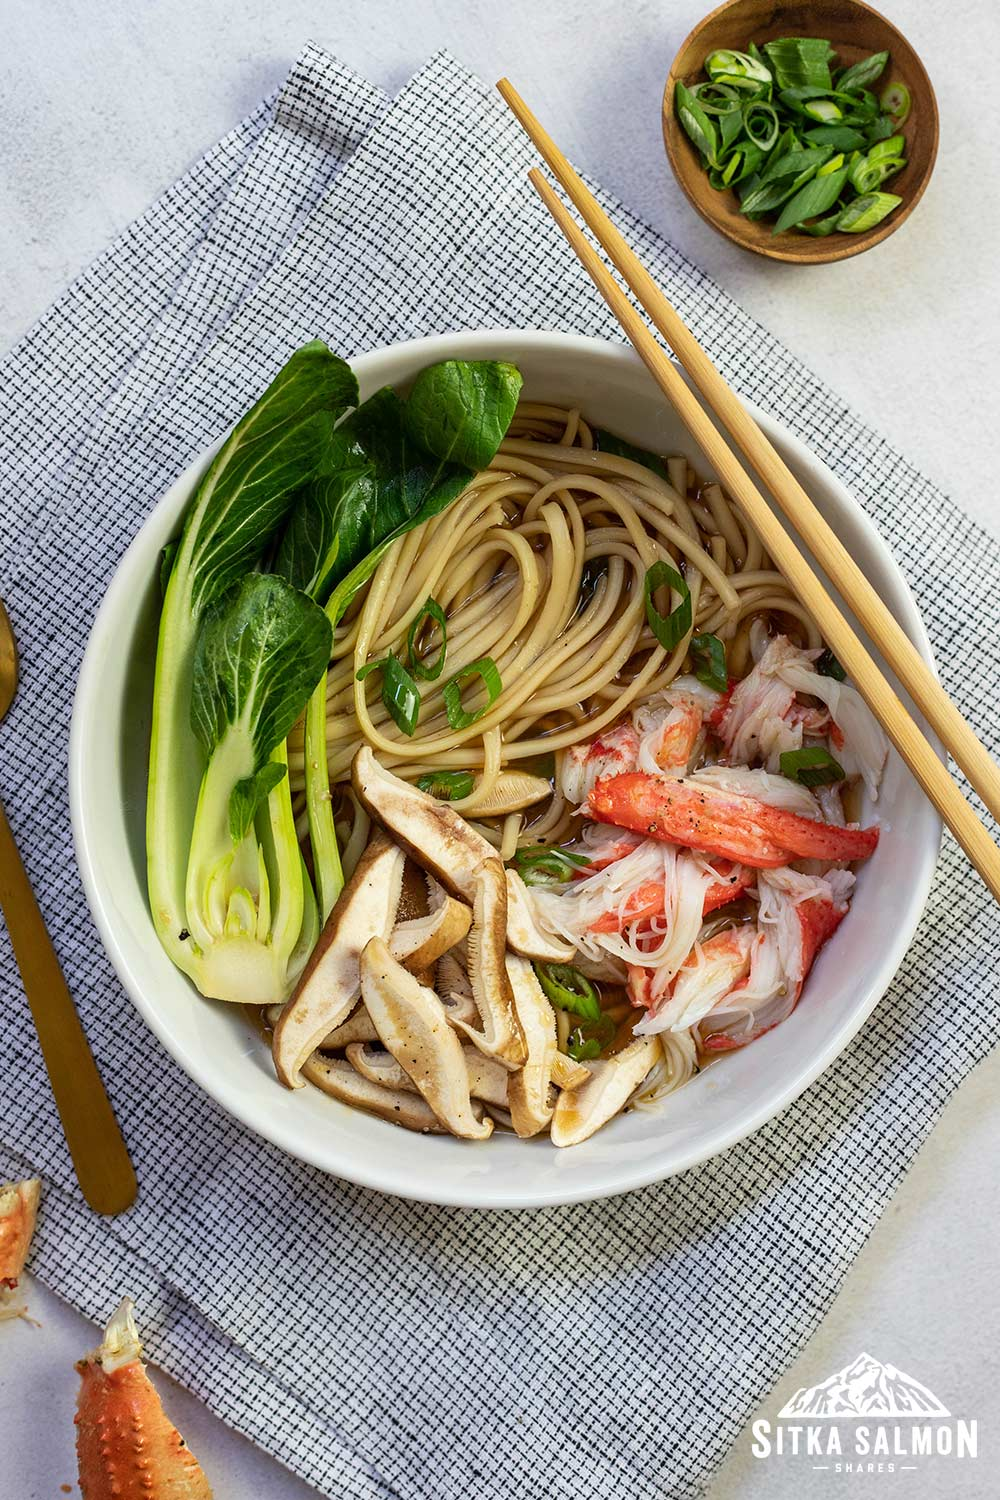 Udon with Bok Choy and Crab Recipe | Sitka Salmon Shares